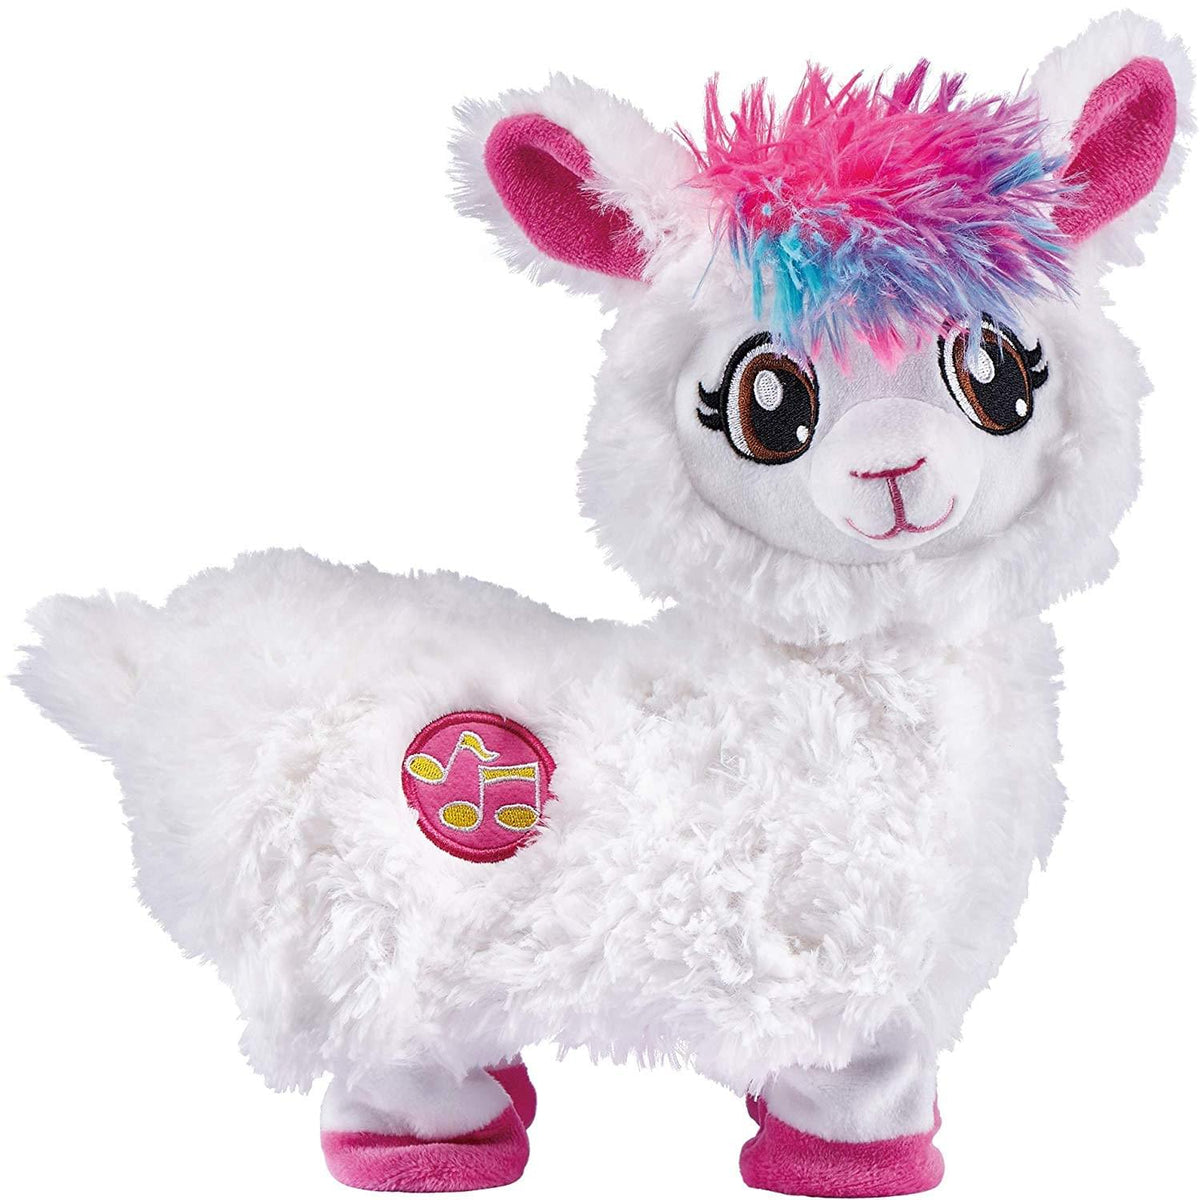 Pets Alive Boppi The Booty Shakin' Llama Interactive Plush Toy